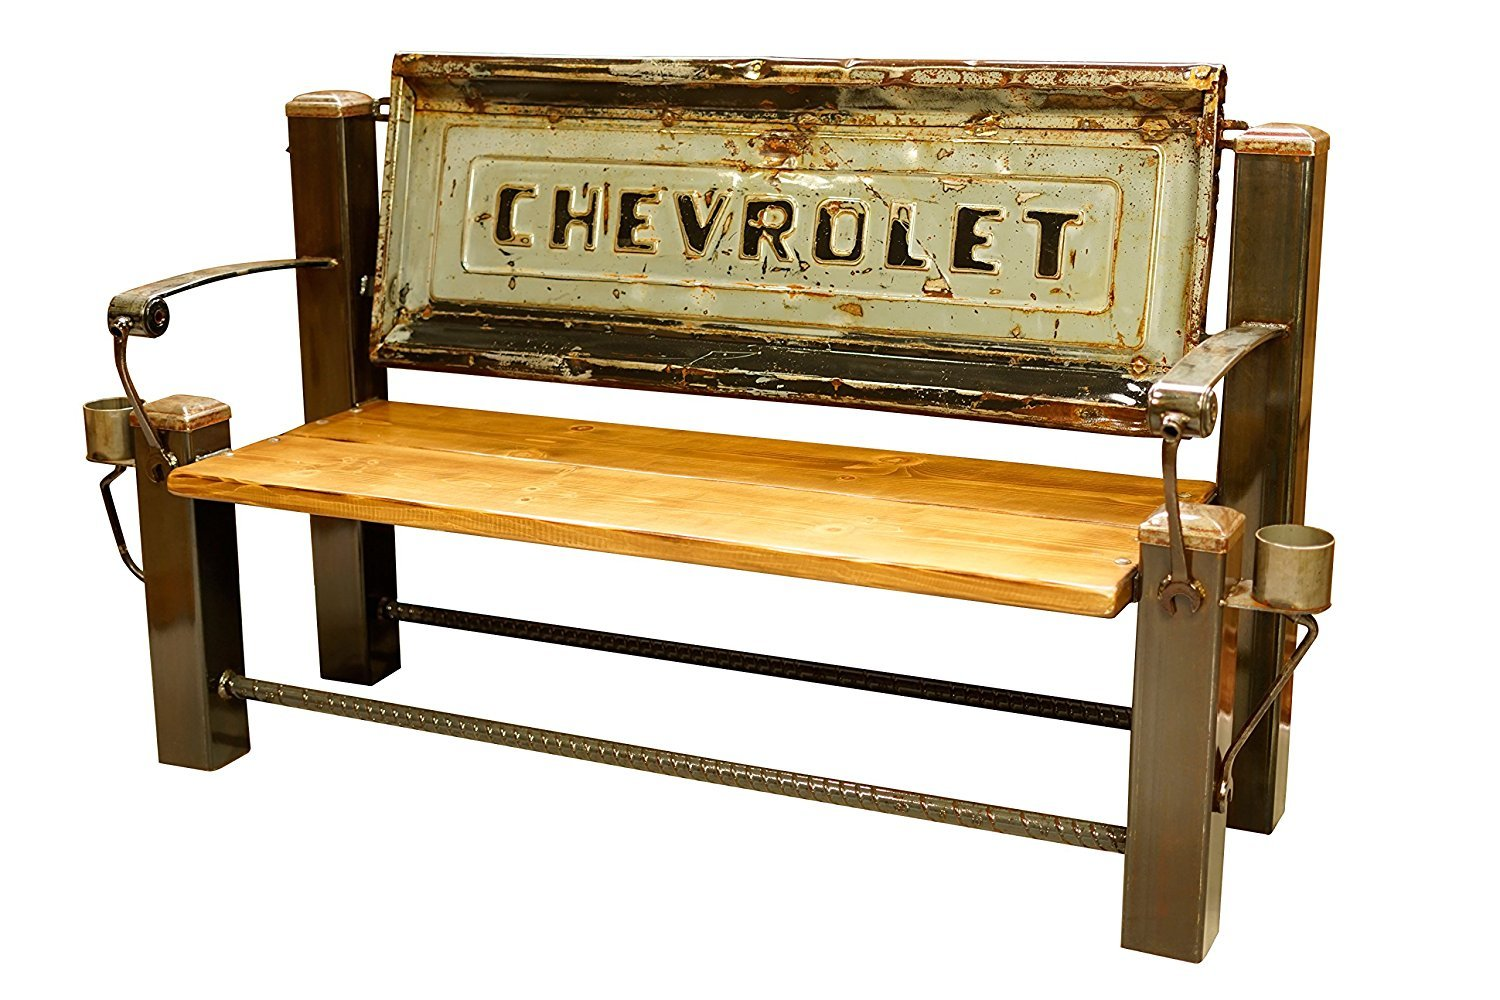 CHEVROLET STEP SIDE BED TAILGATE BENCH 【GRAY】